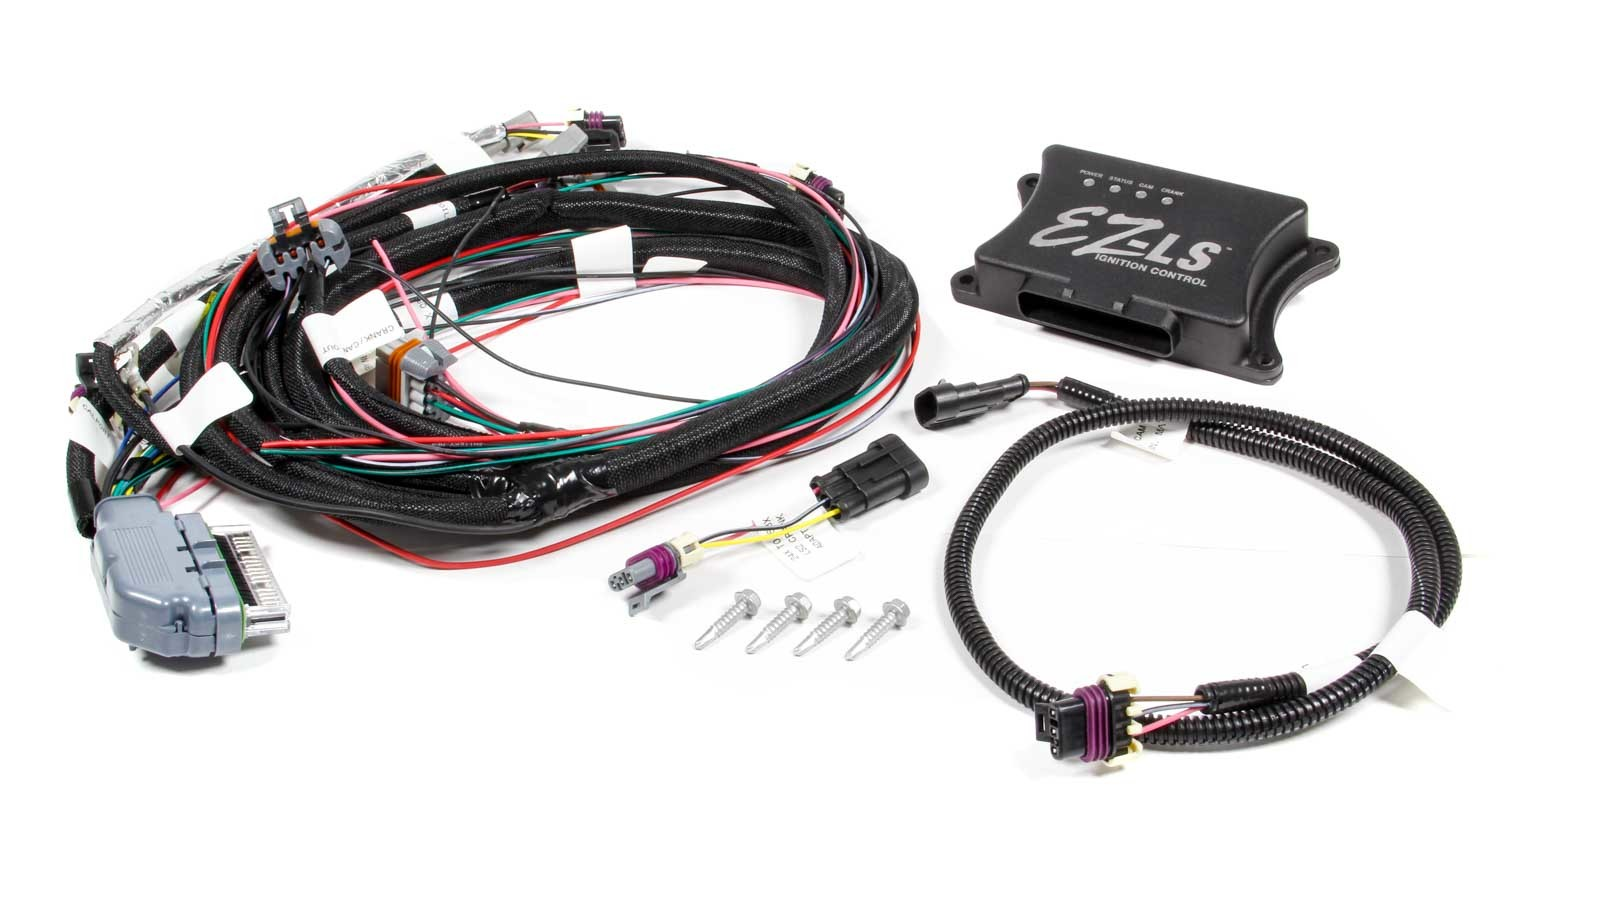 Fast Electronics 301312E Ignition Controller, EZ-LS, Coil-On-Plug, Wiring Harness Included, 24/58 Tooth Reluctor, GM LS-Series, Kit